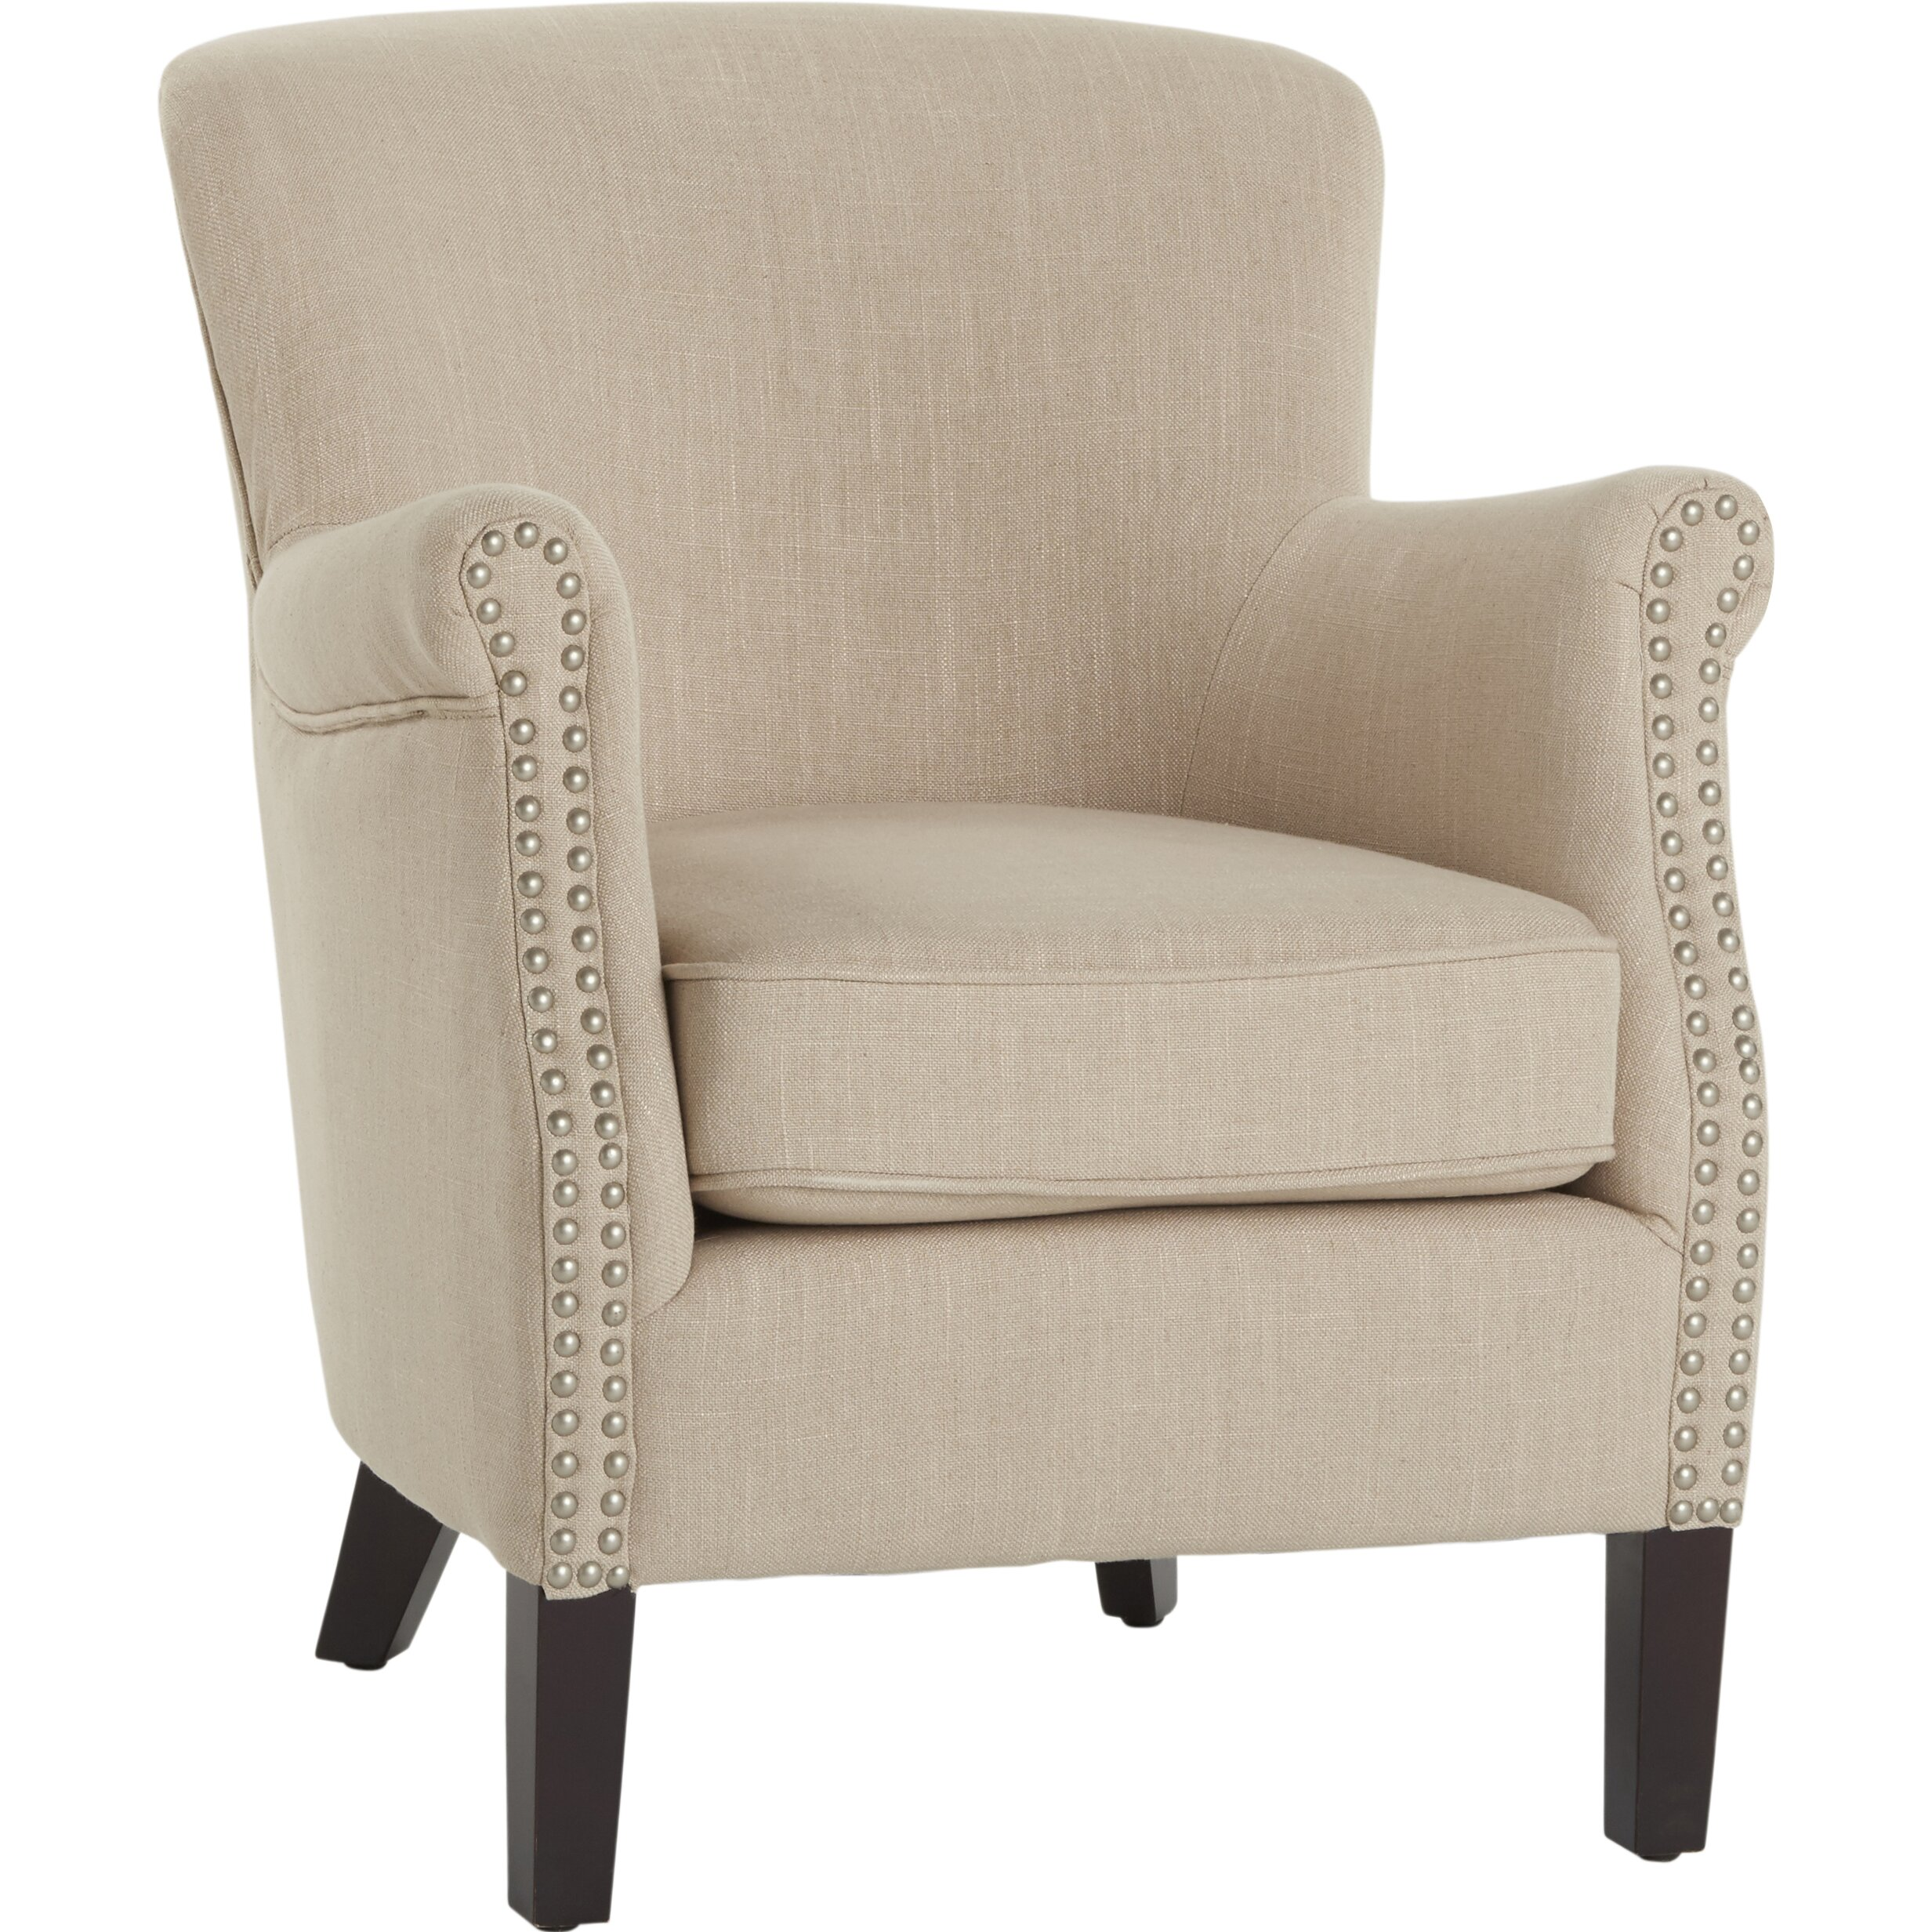 Fairmont Park Keynsham Armchair Amp Reviews Wayfair Uk